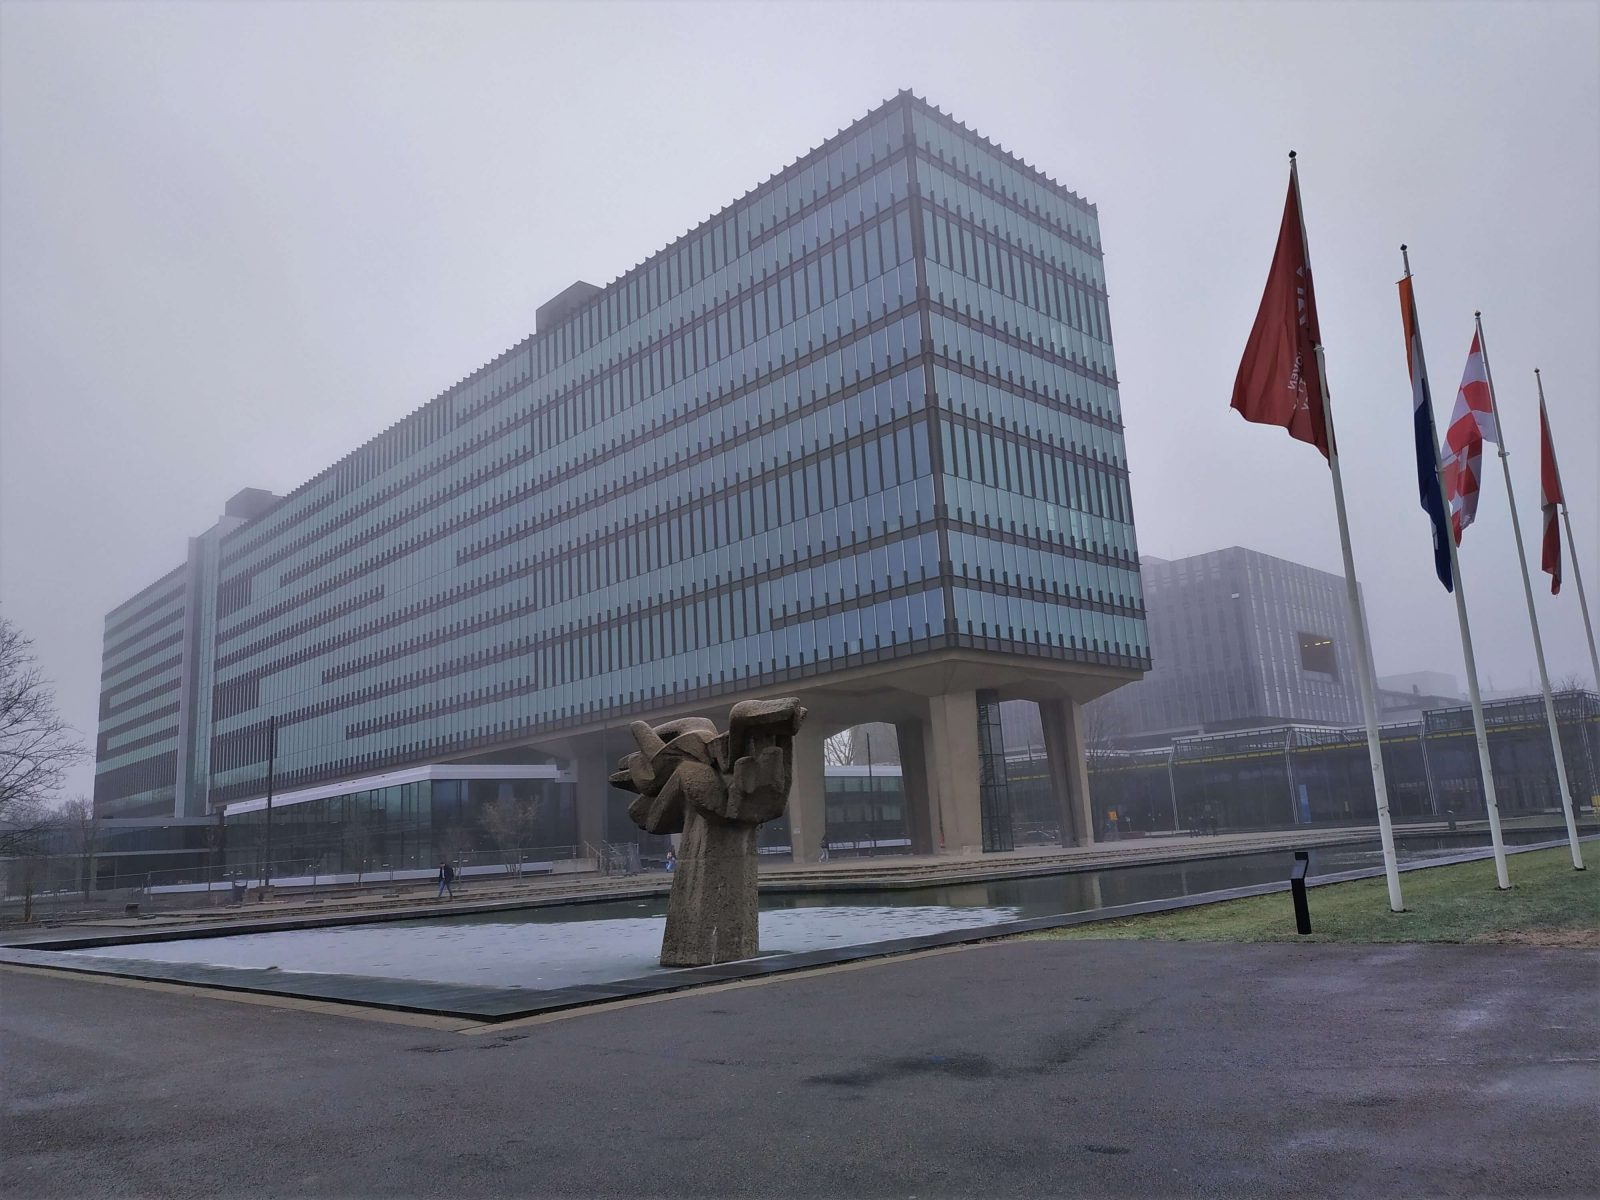 Eindhoven technical university campus in fog